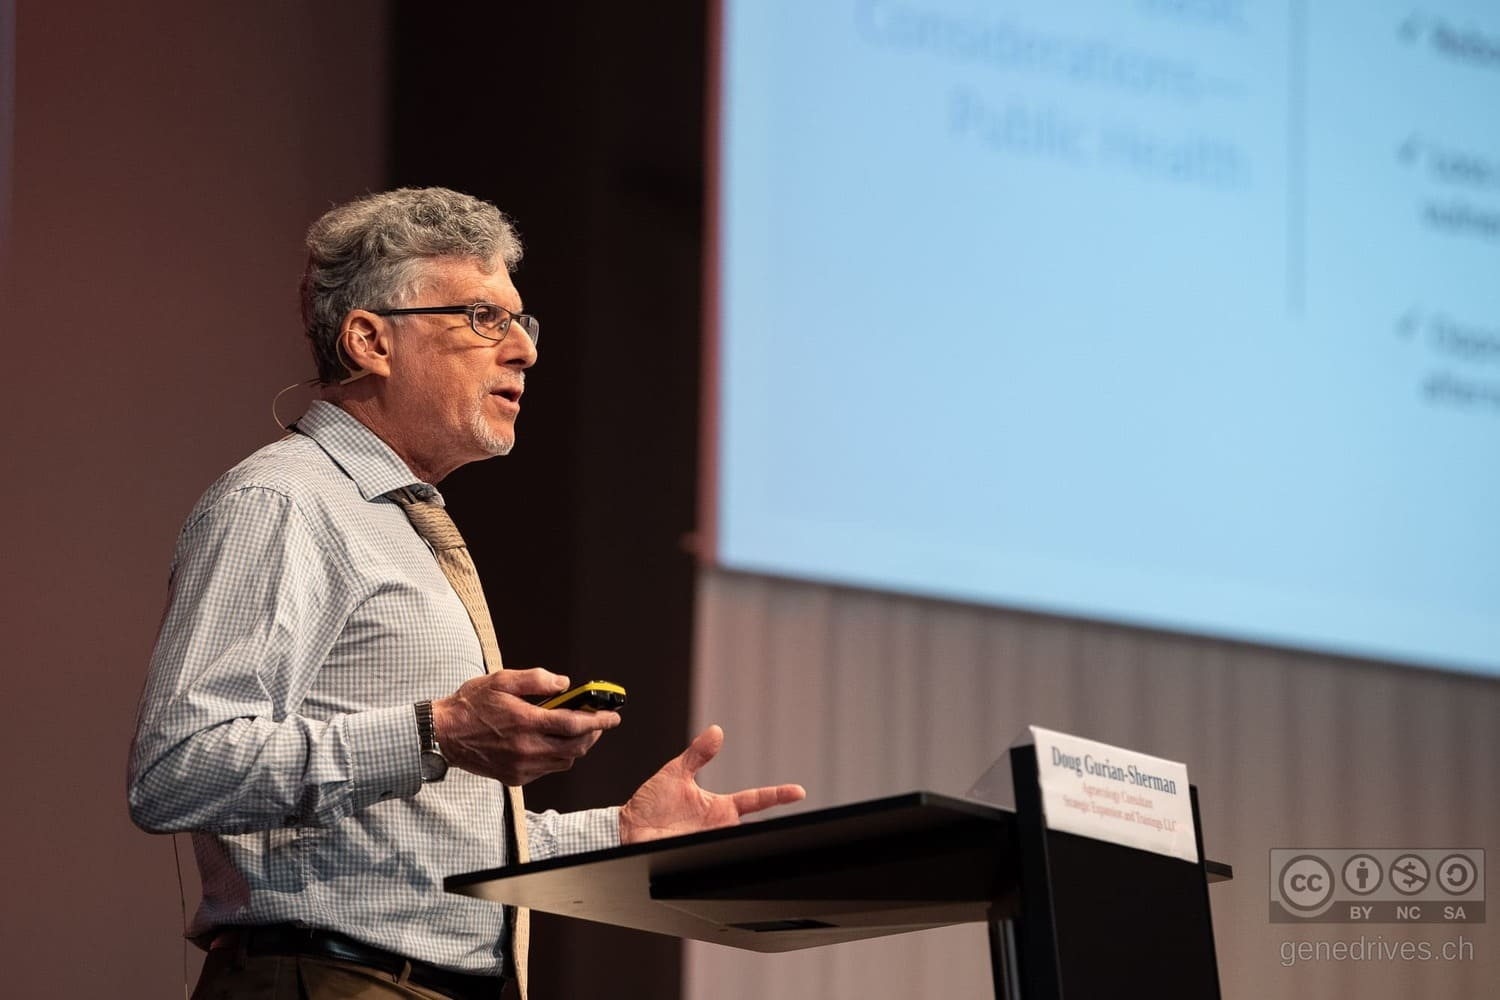 Doug Gurian Sherman speaks at the GeneDrive Symposium 2019.